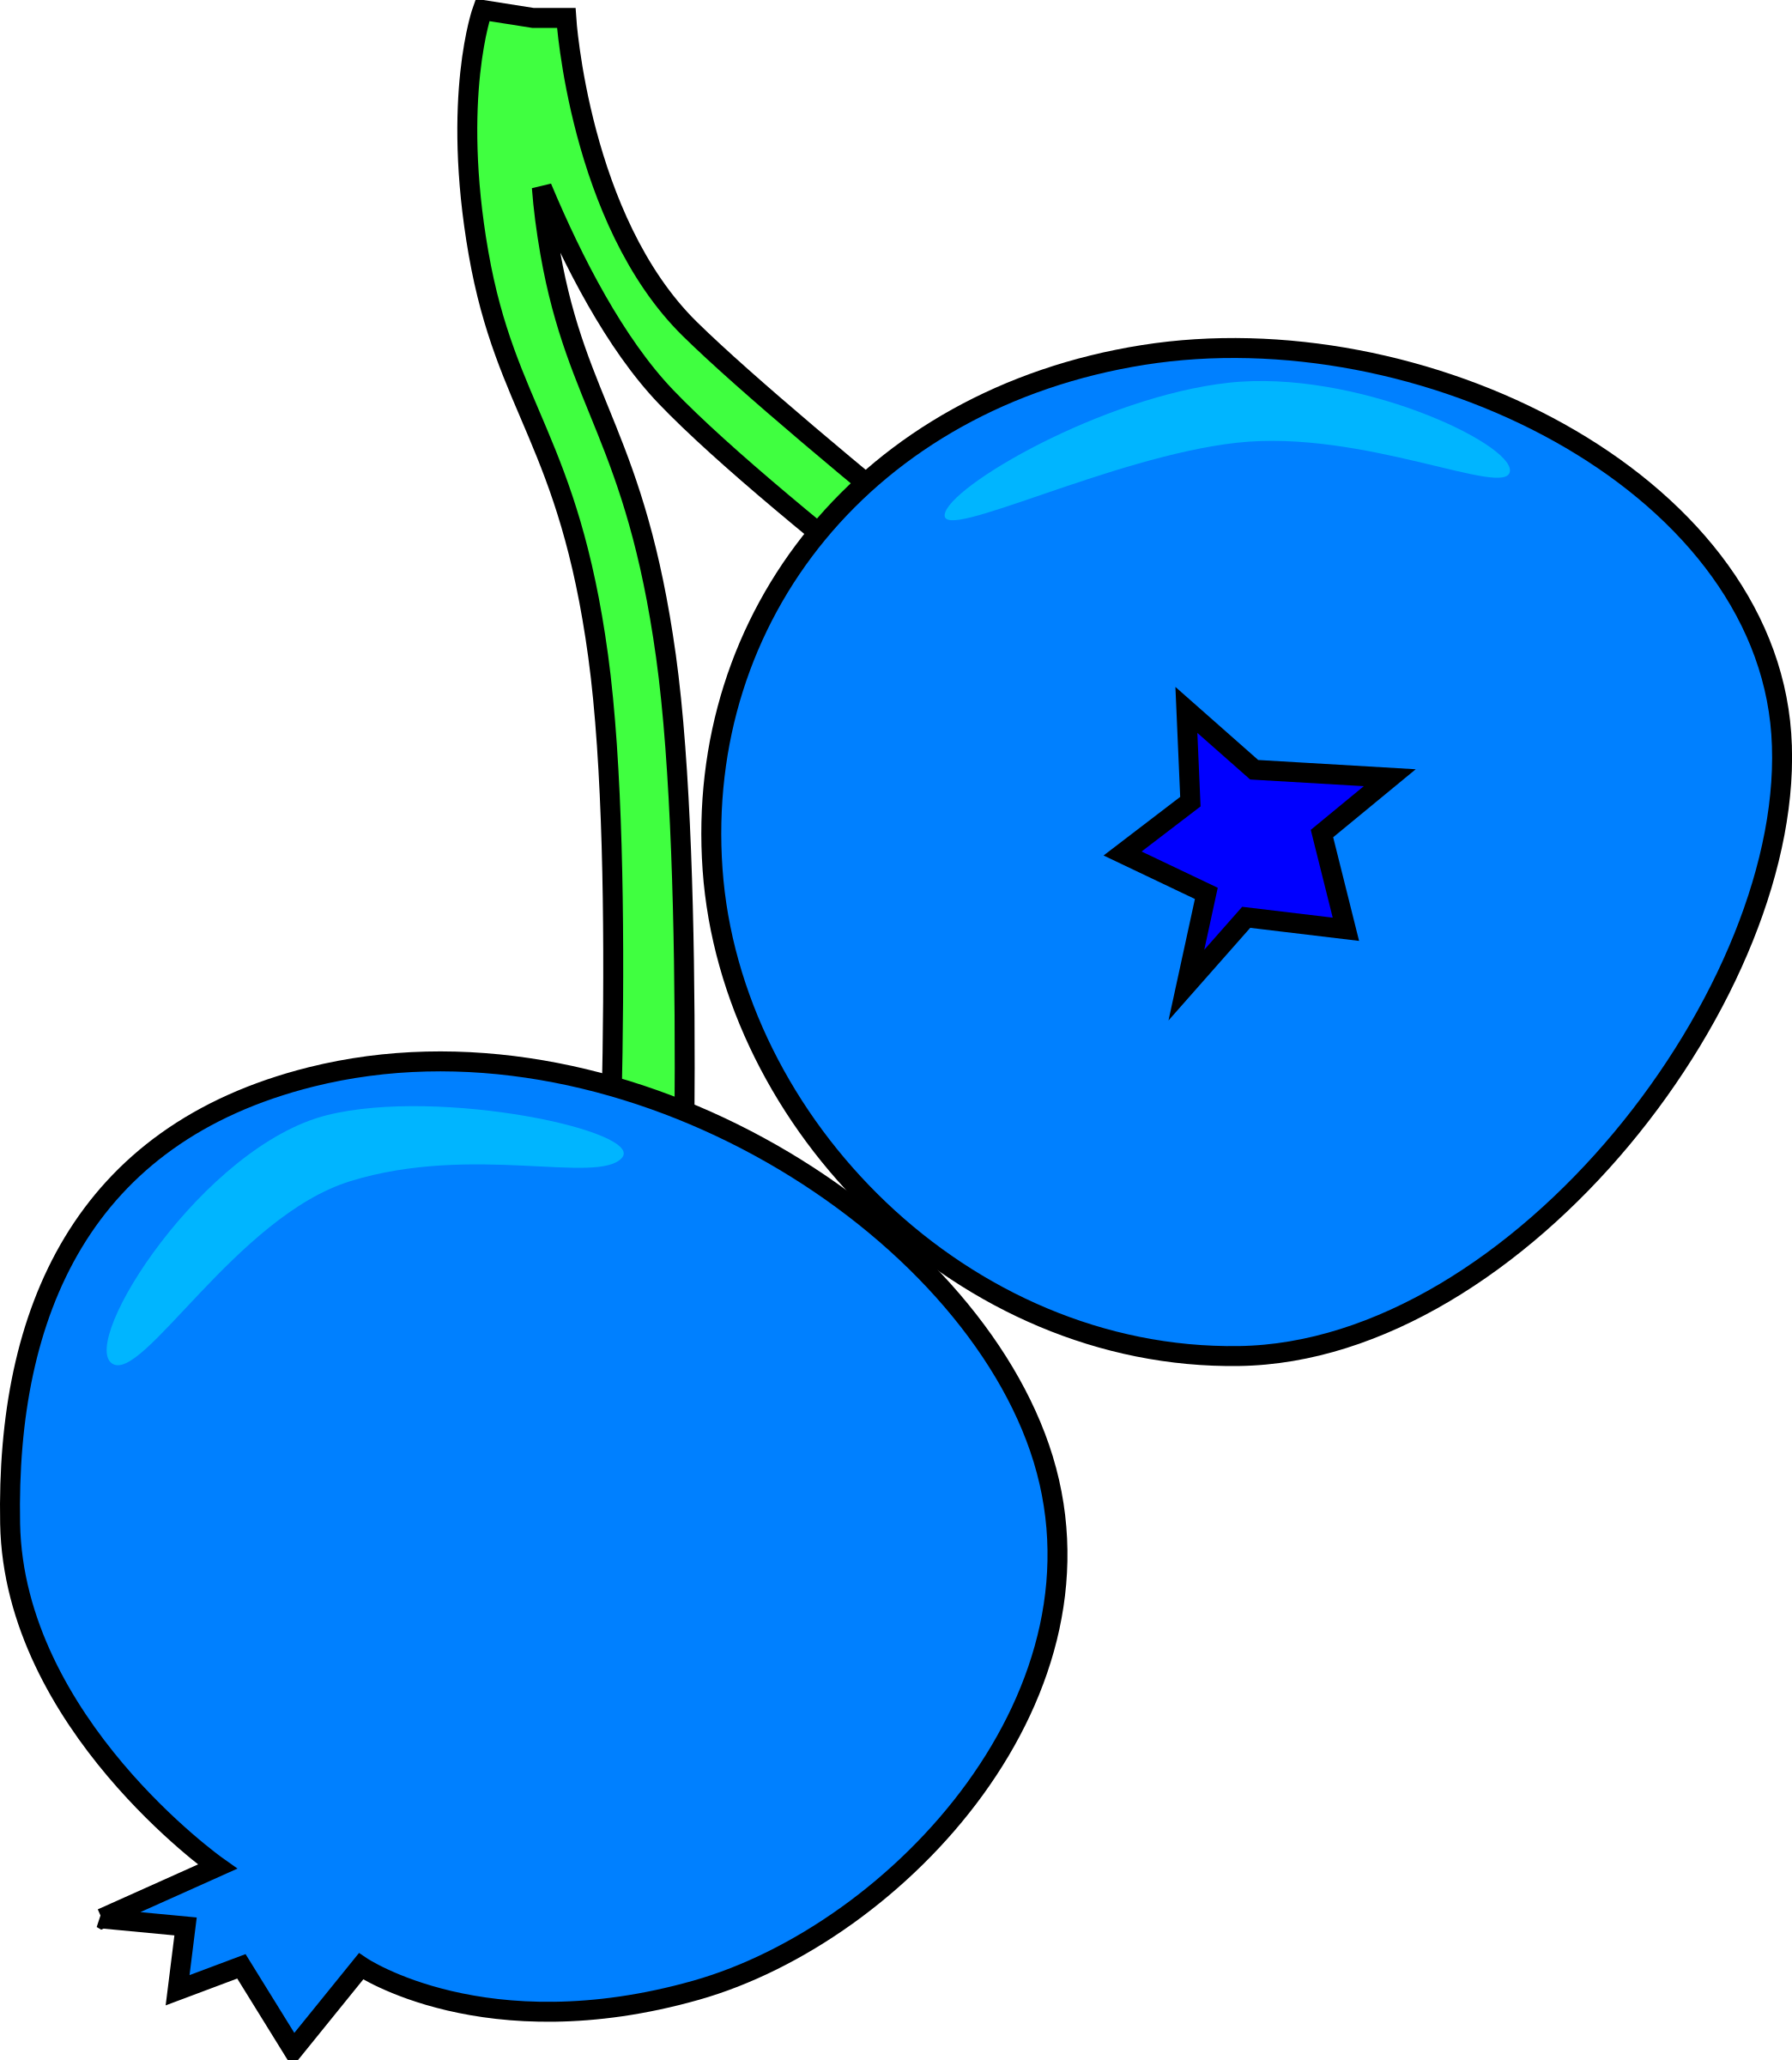 freeuse library Big image png. Blueberry clipart blue berry.